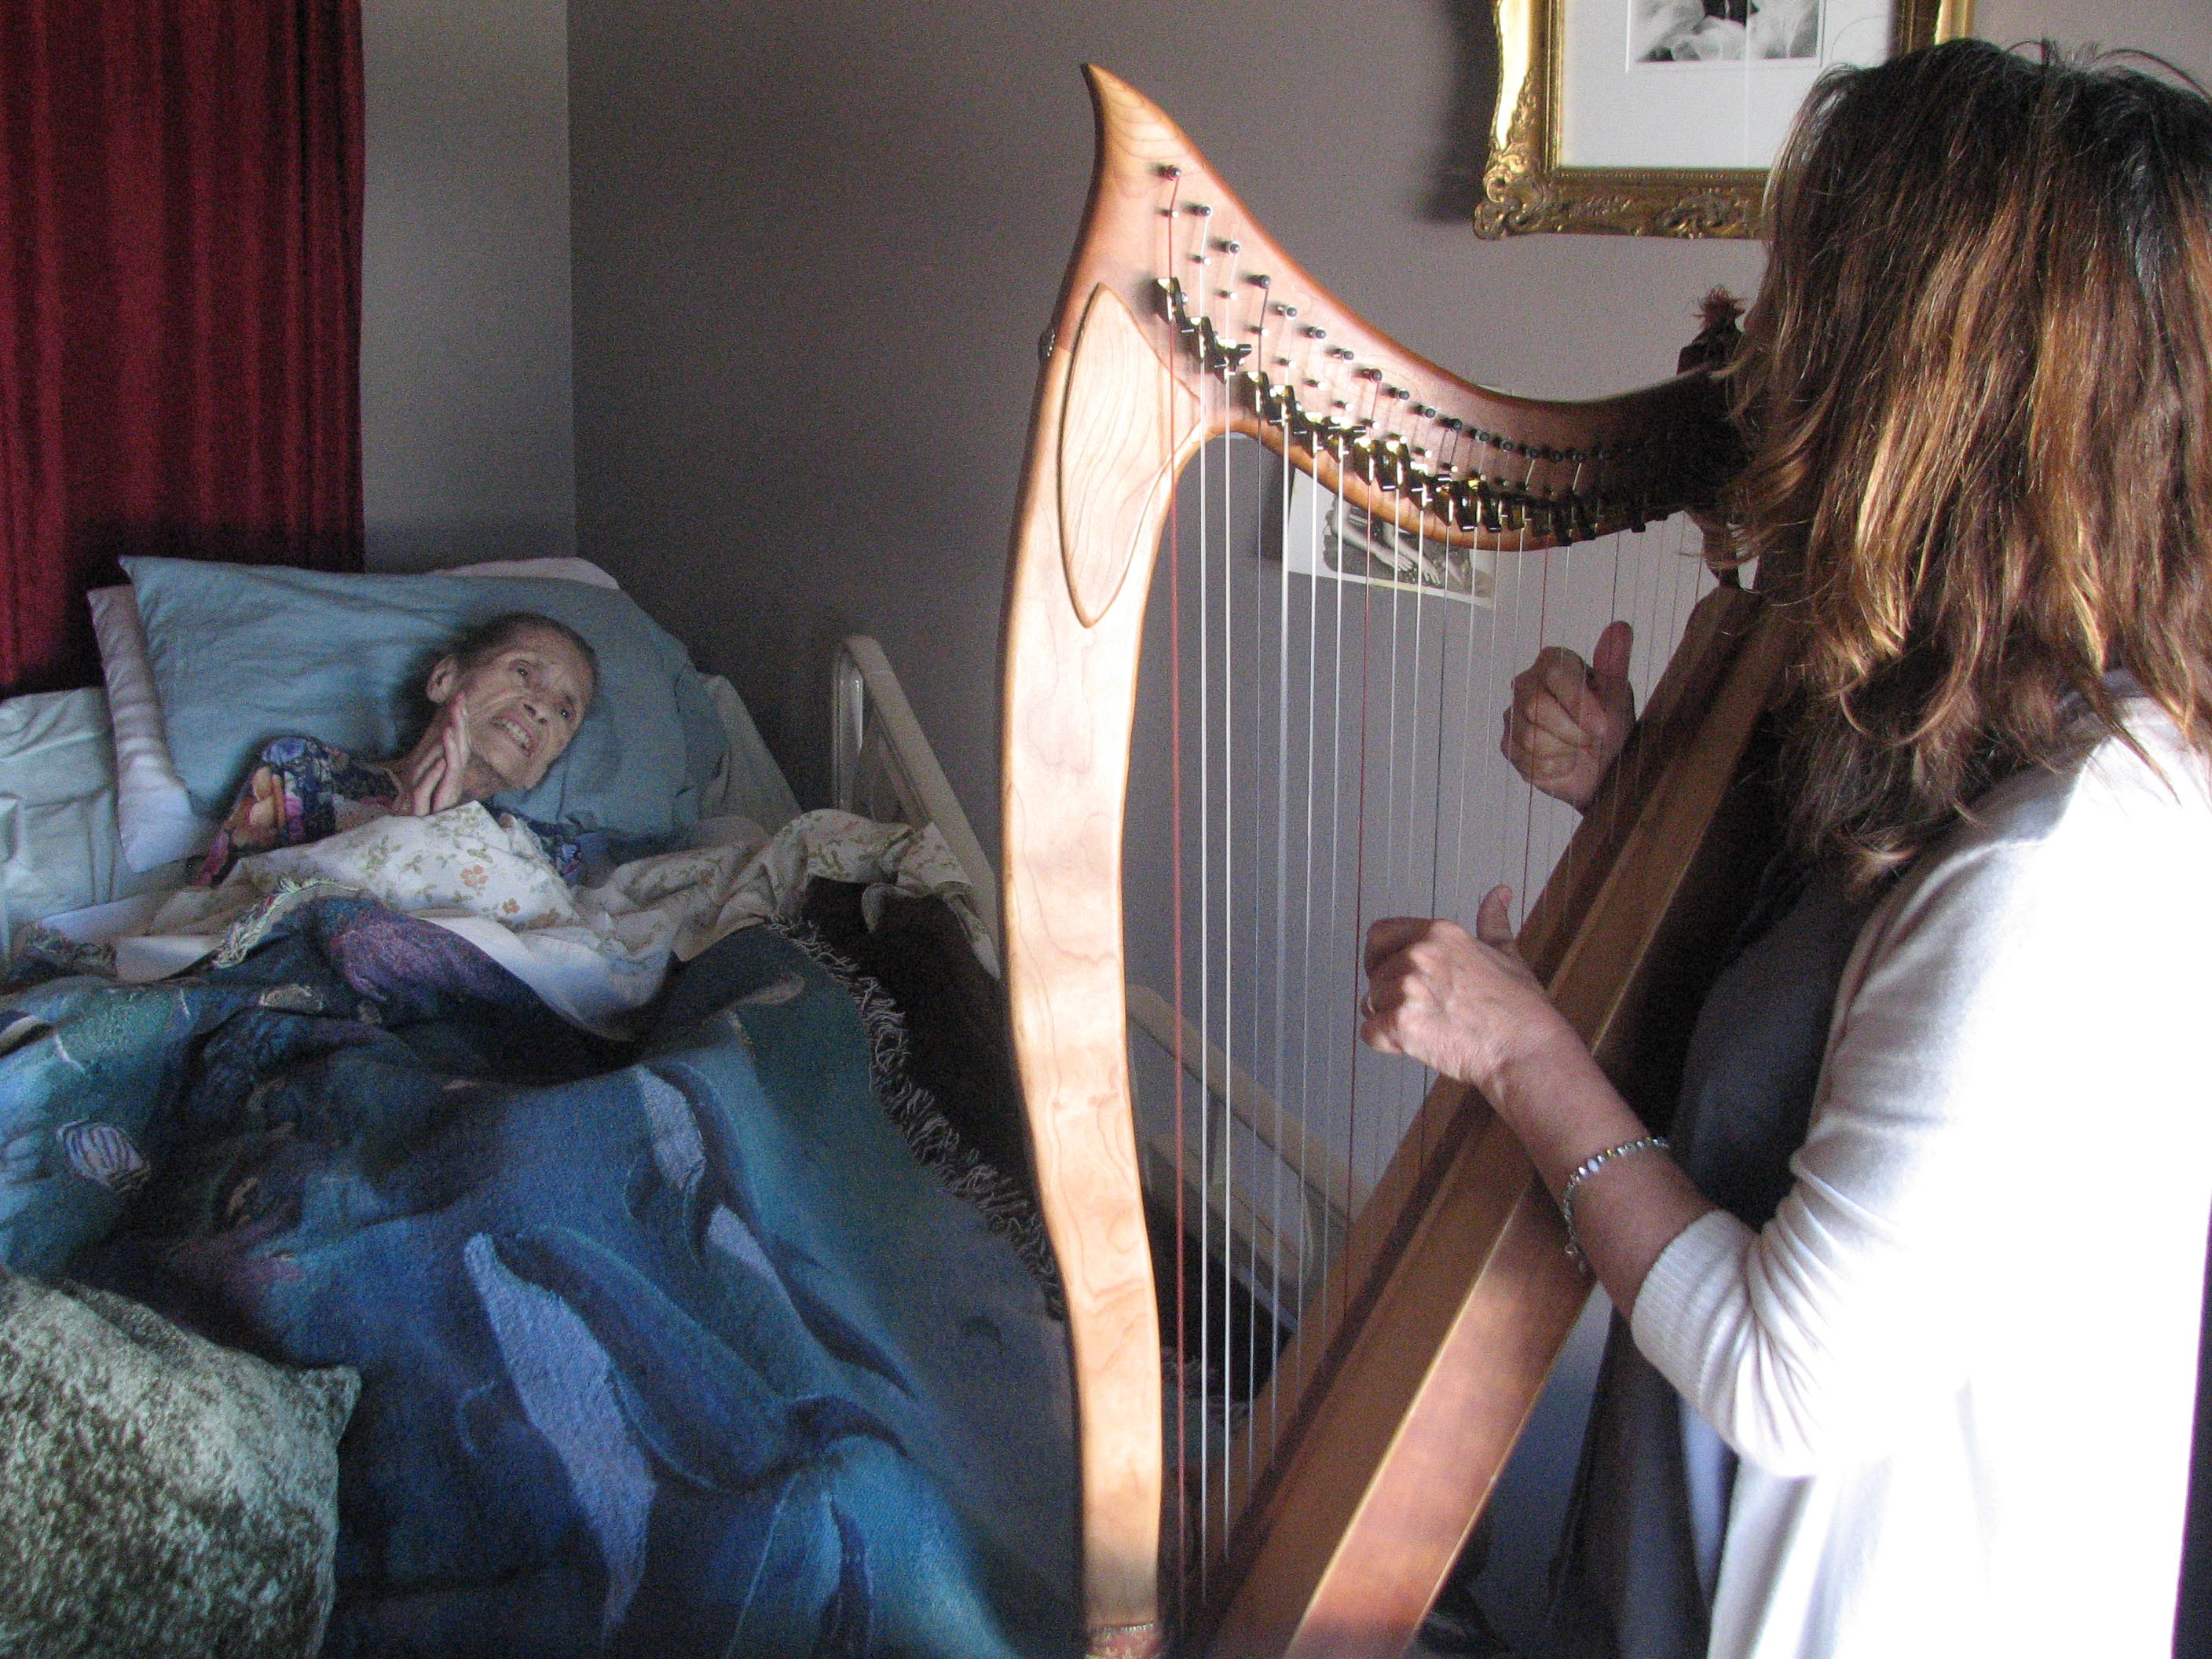 Sarah House - Harpist at bedside